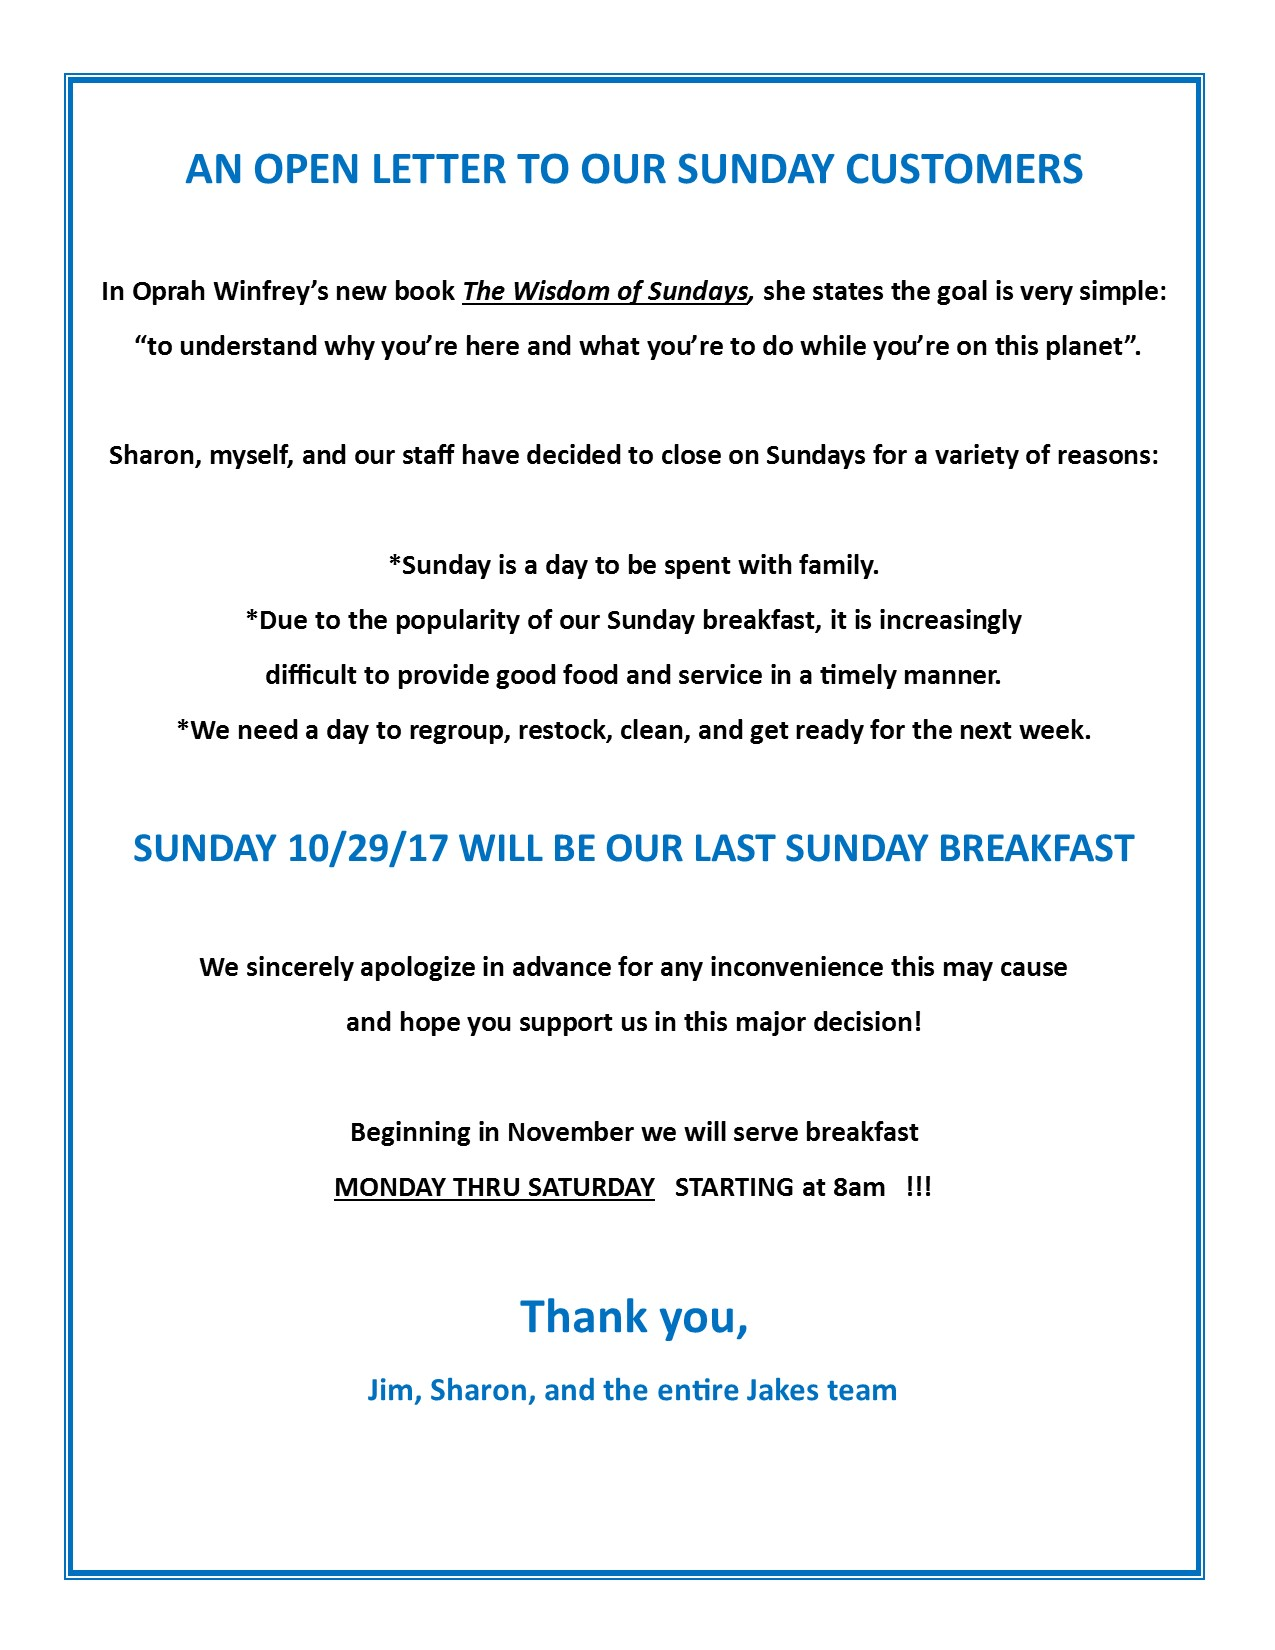 Open Letter to our Sunday Customers